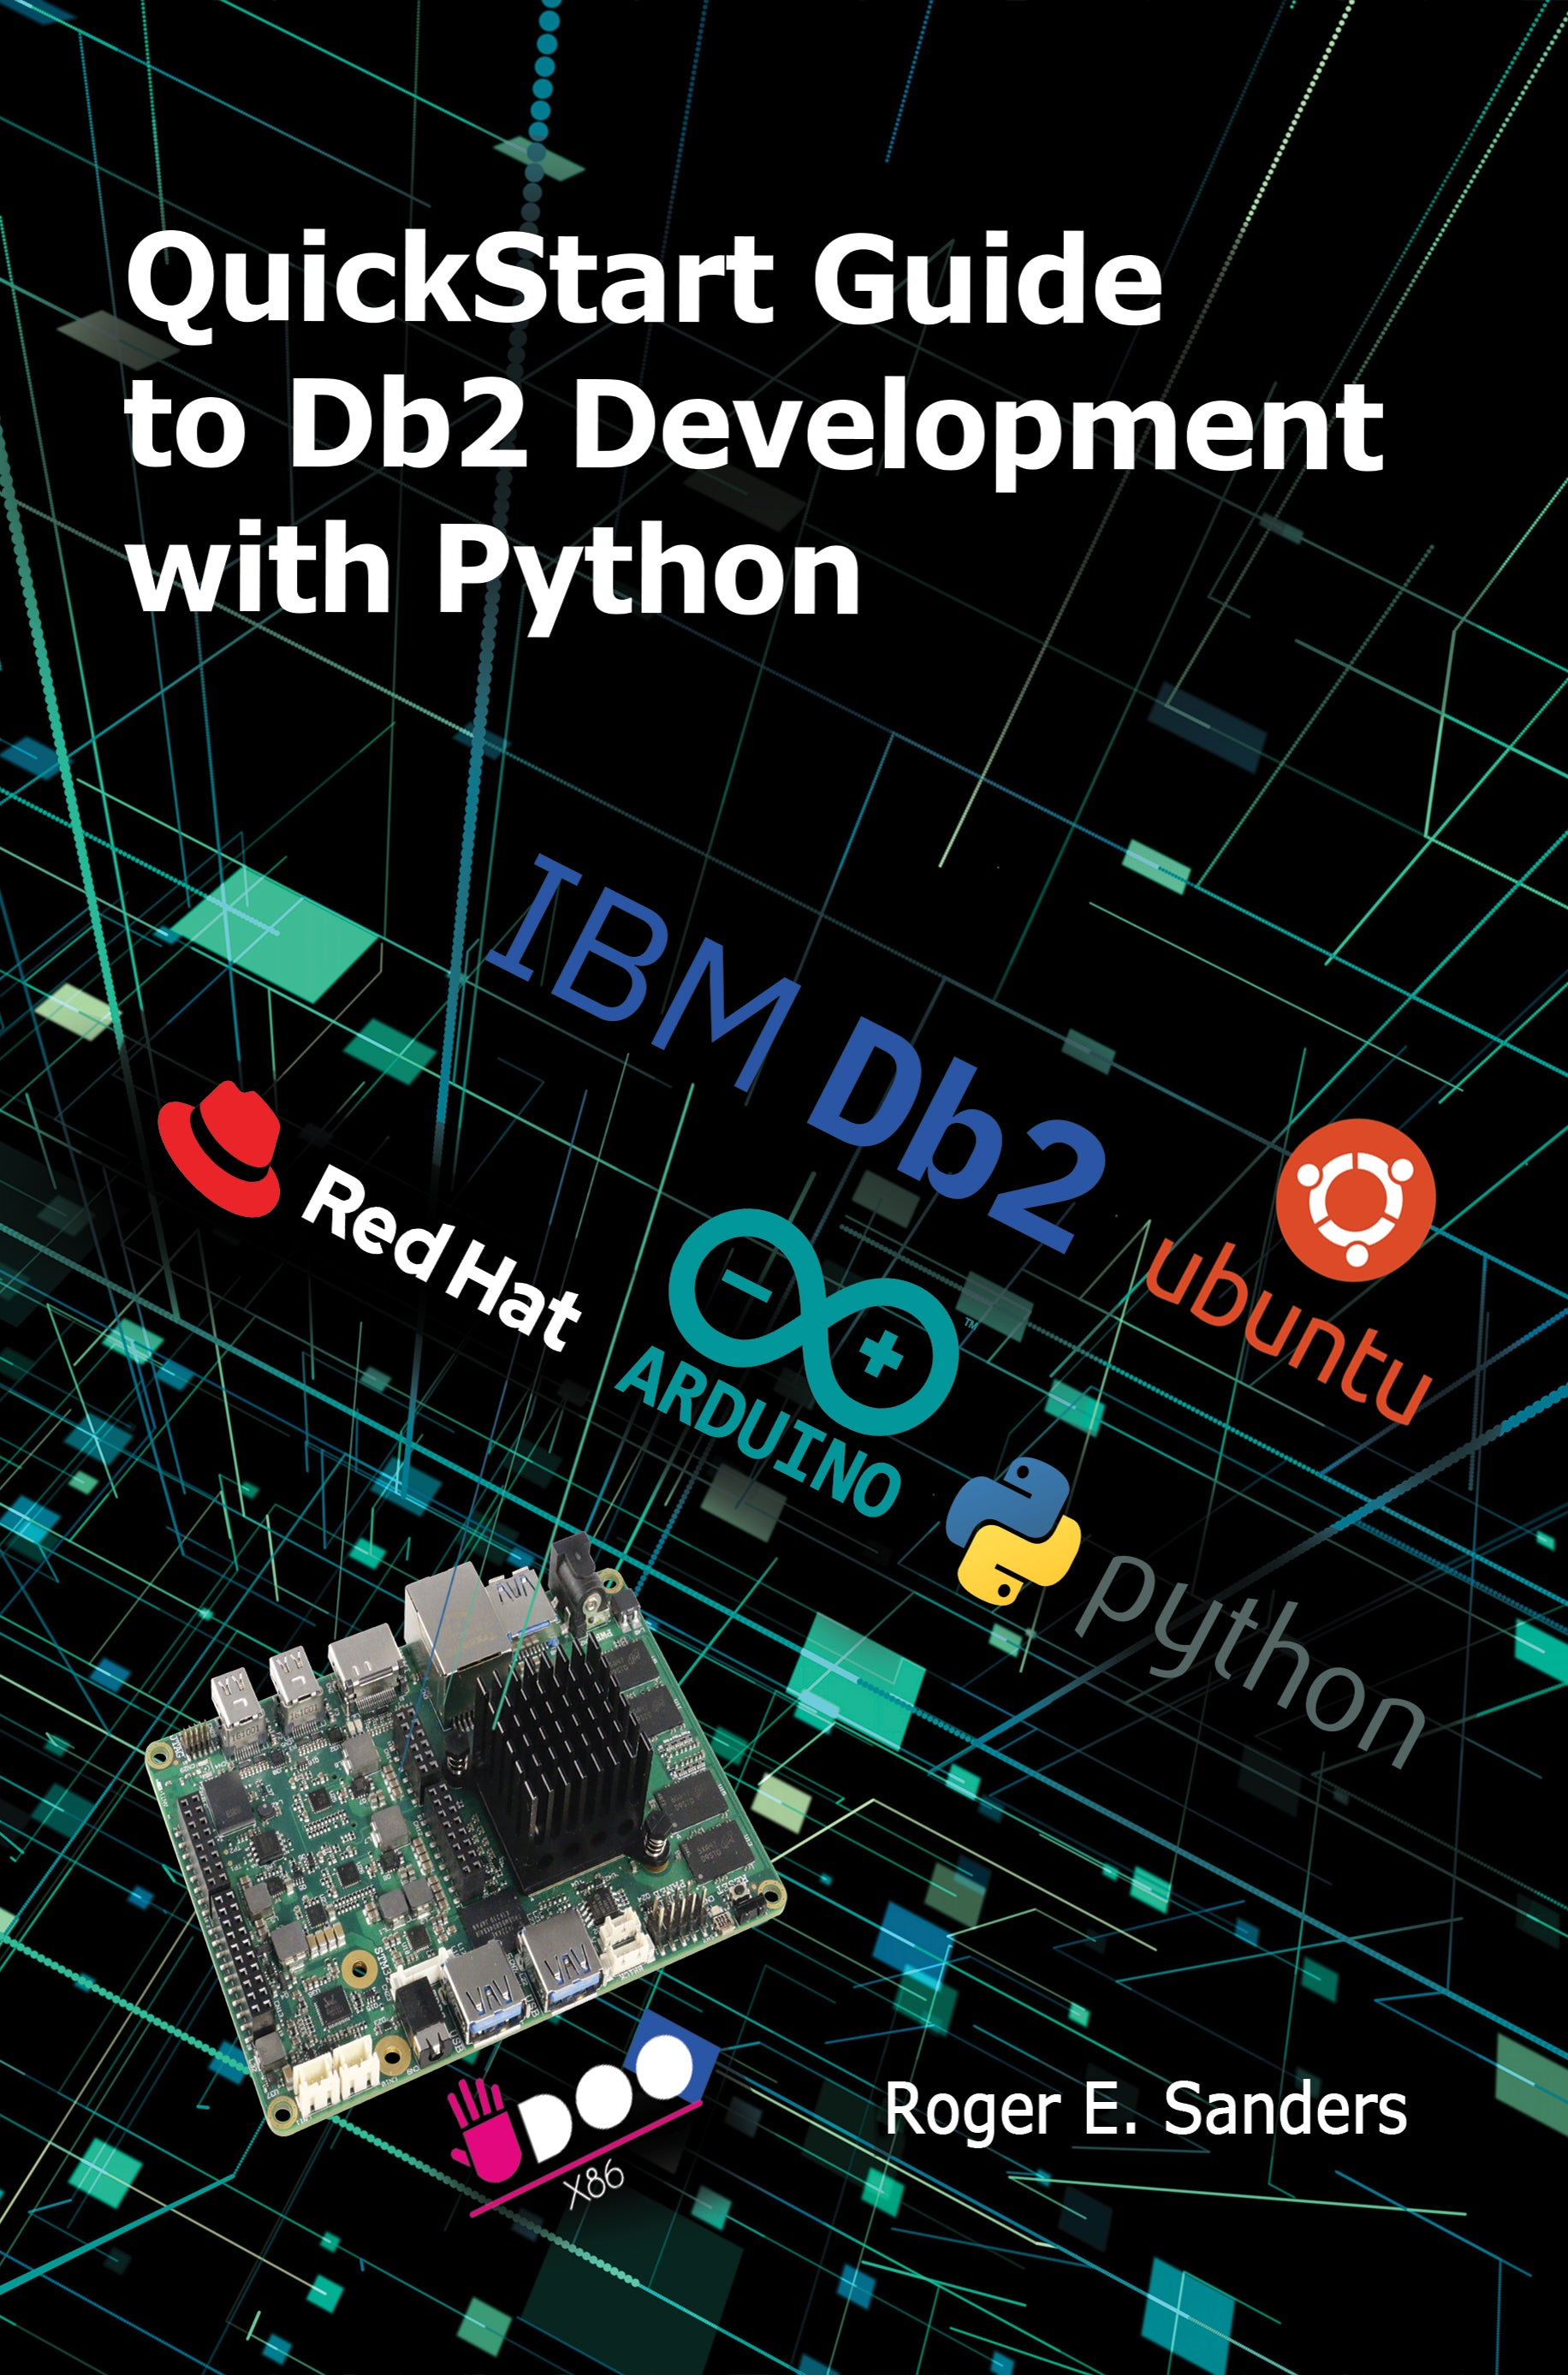 QuickStart Guide to Db2 Development with Python